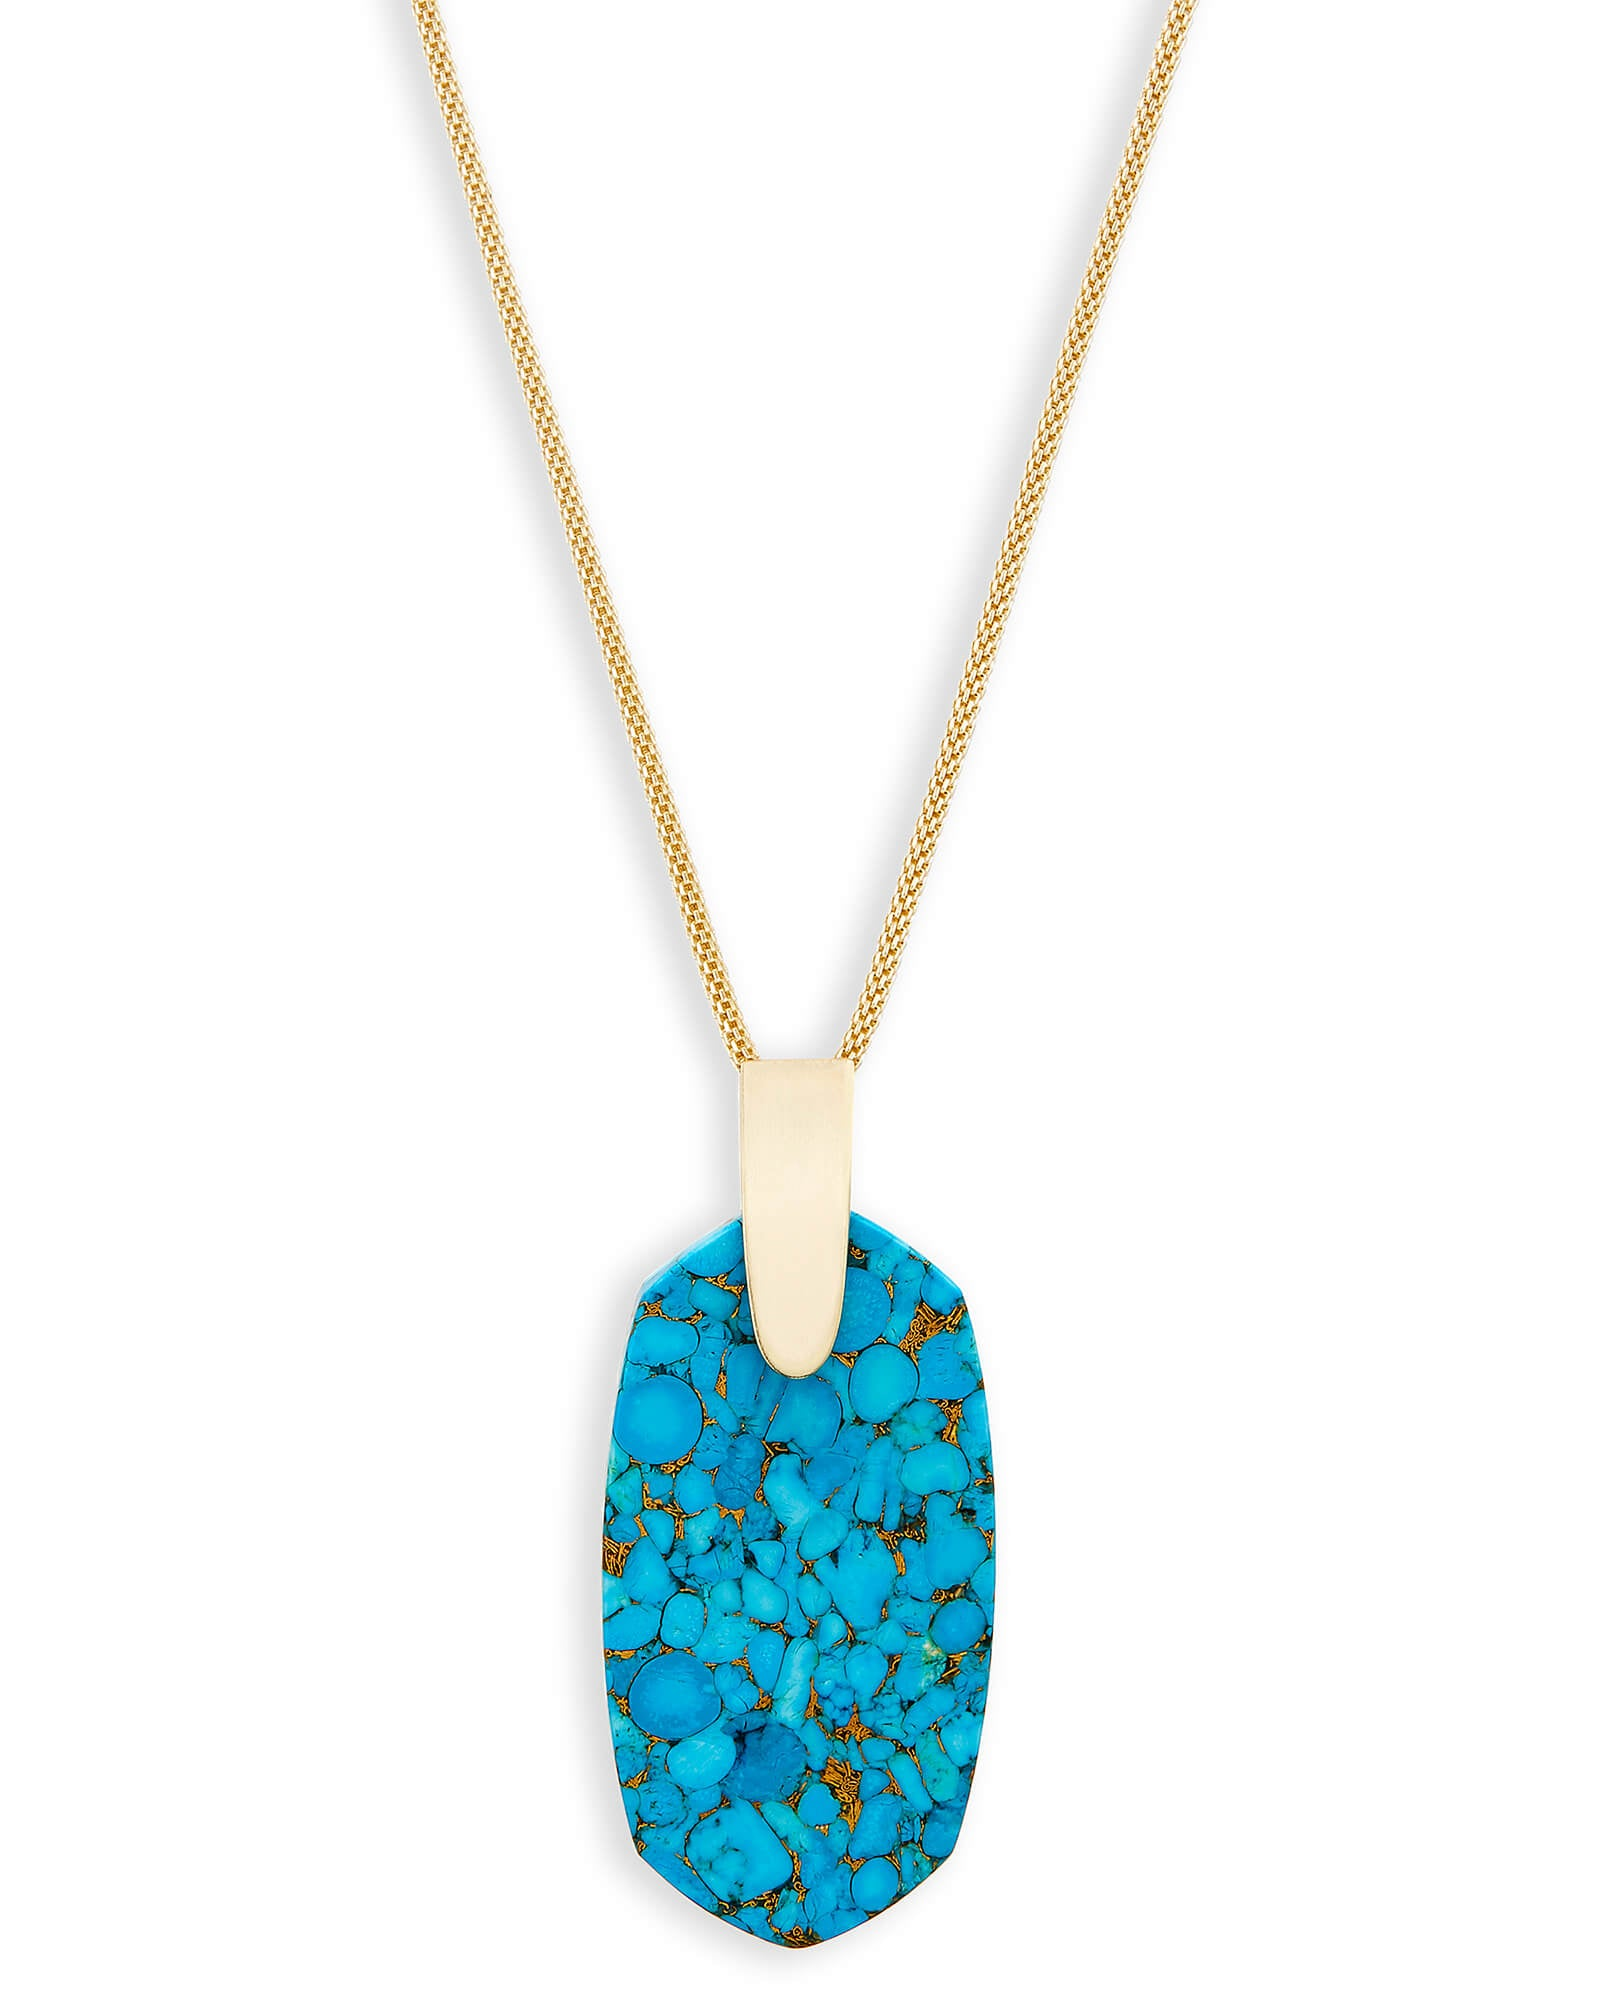 Kendra Scott Inez Gold Long Pendant Necklace In Bronze Veined Turquoise